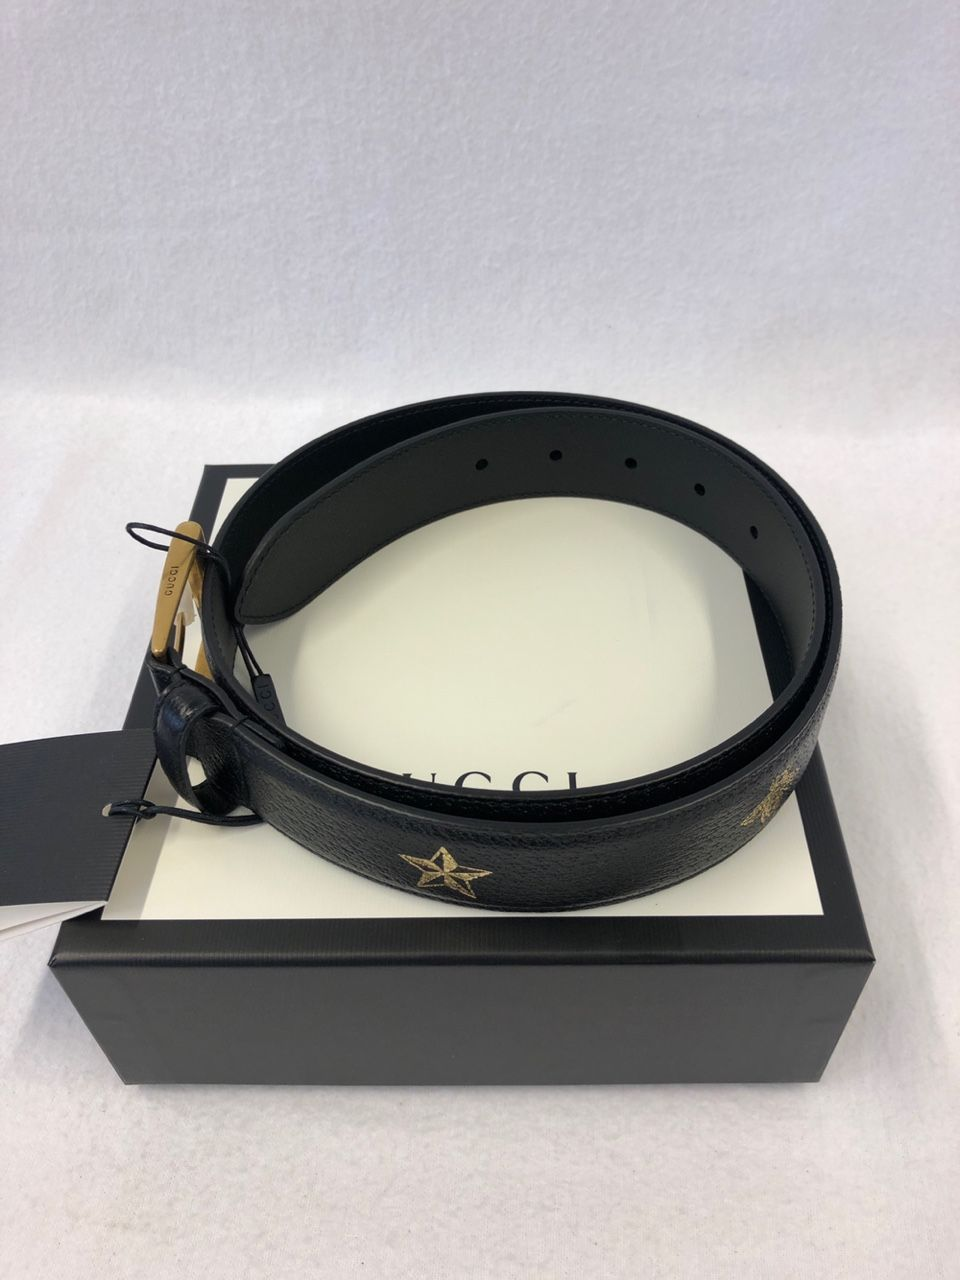 Gucci Bees and stars belt black leather Style # 495125 DJ2KT 8474